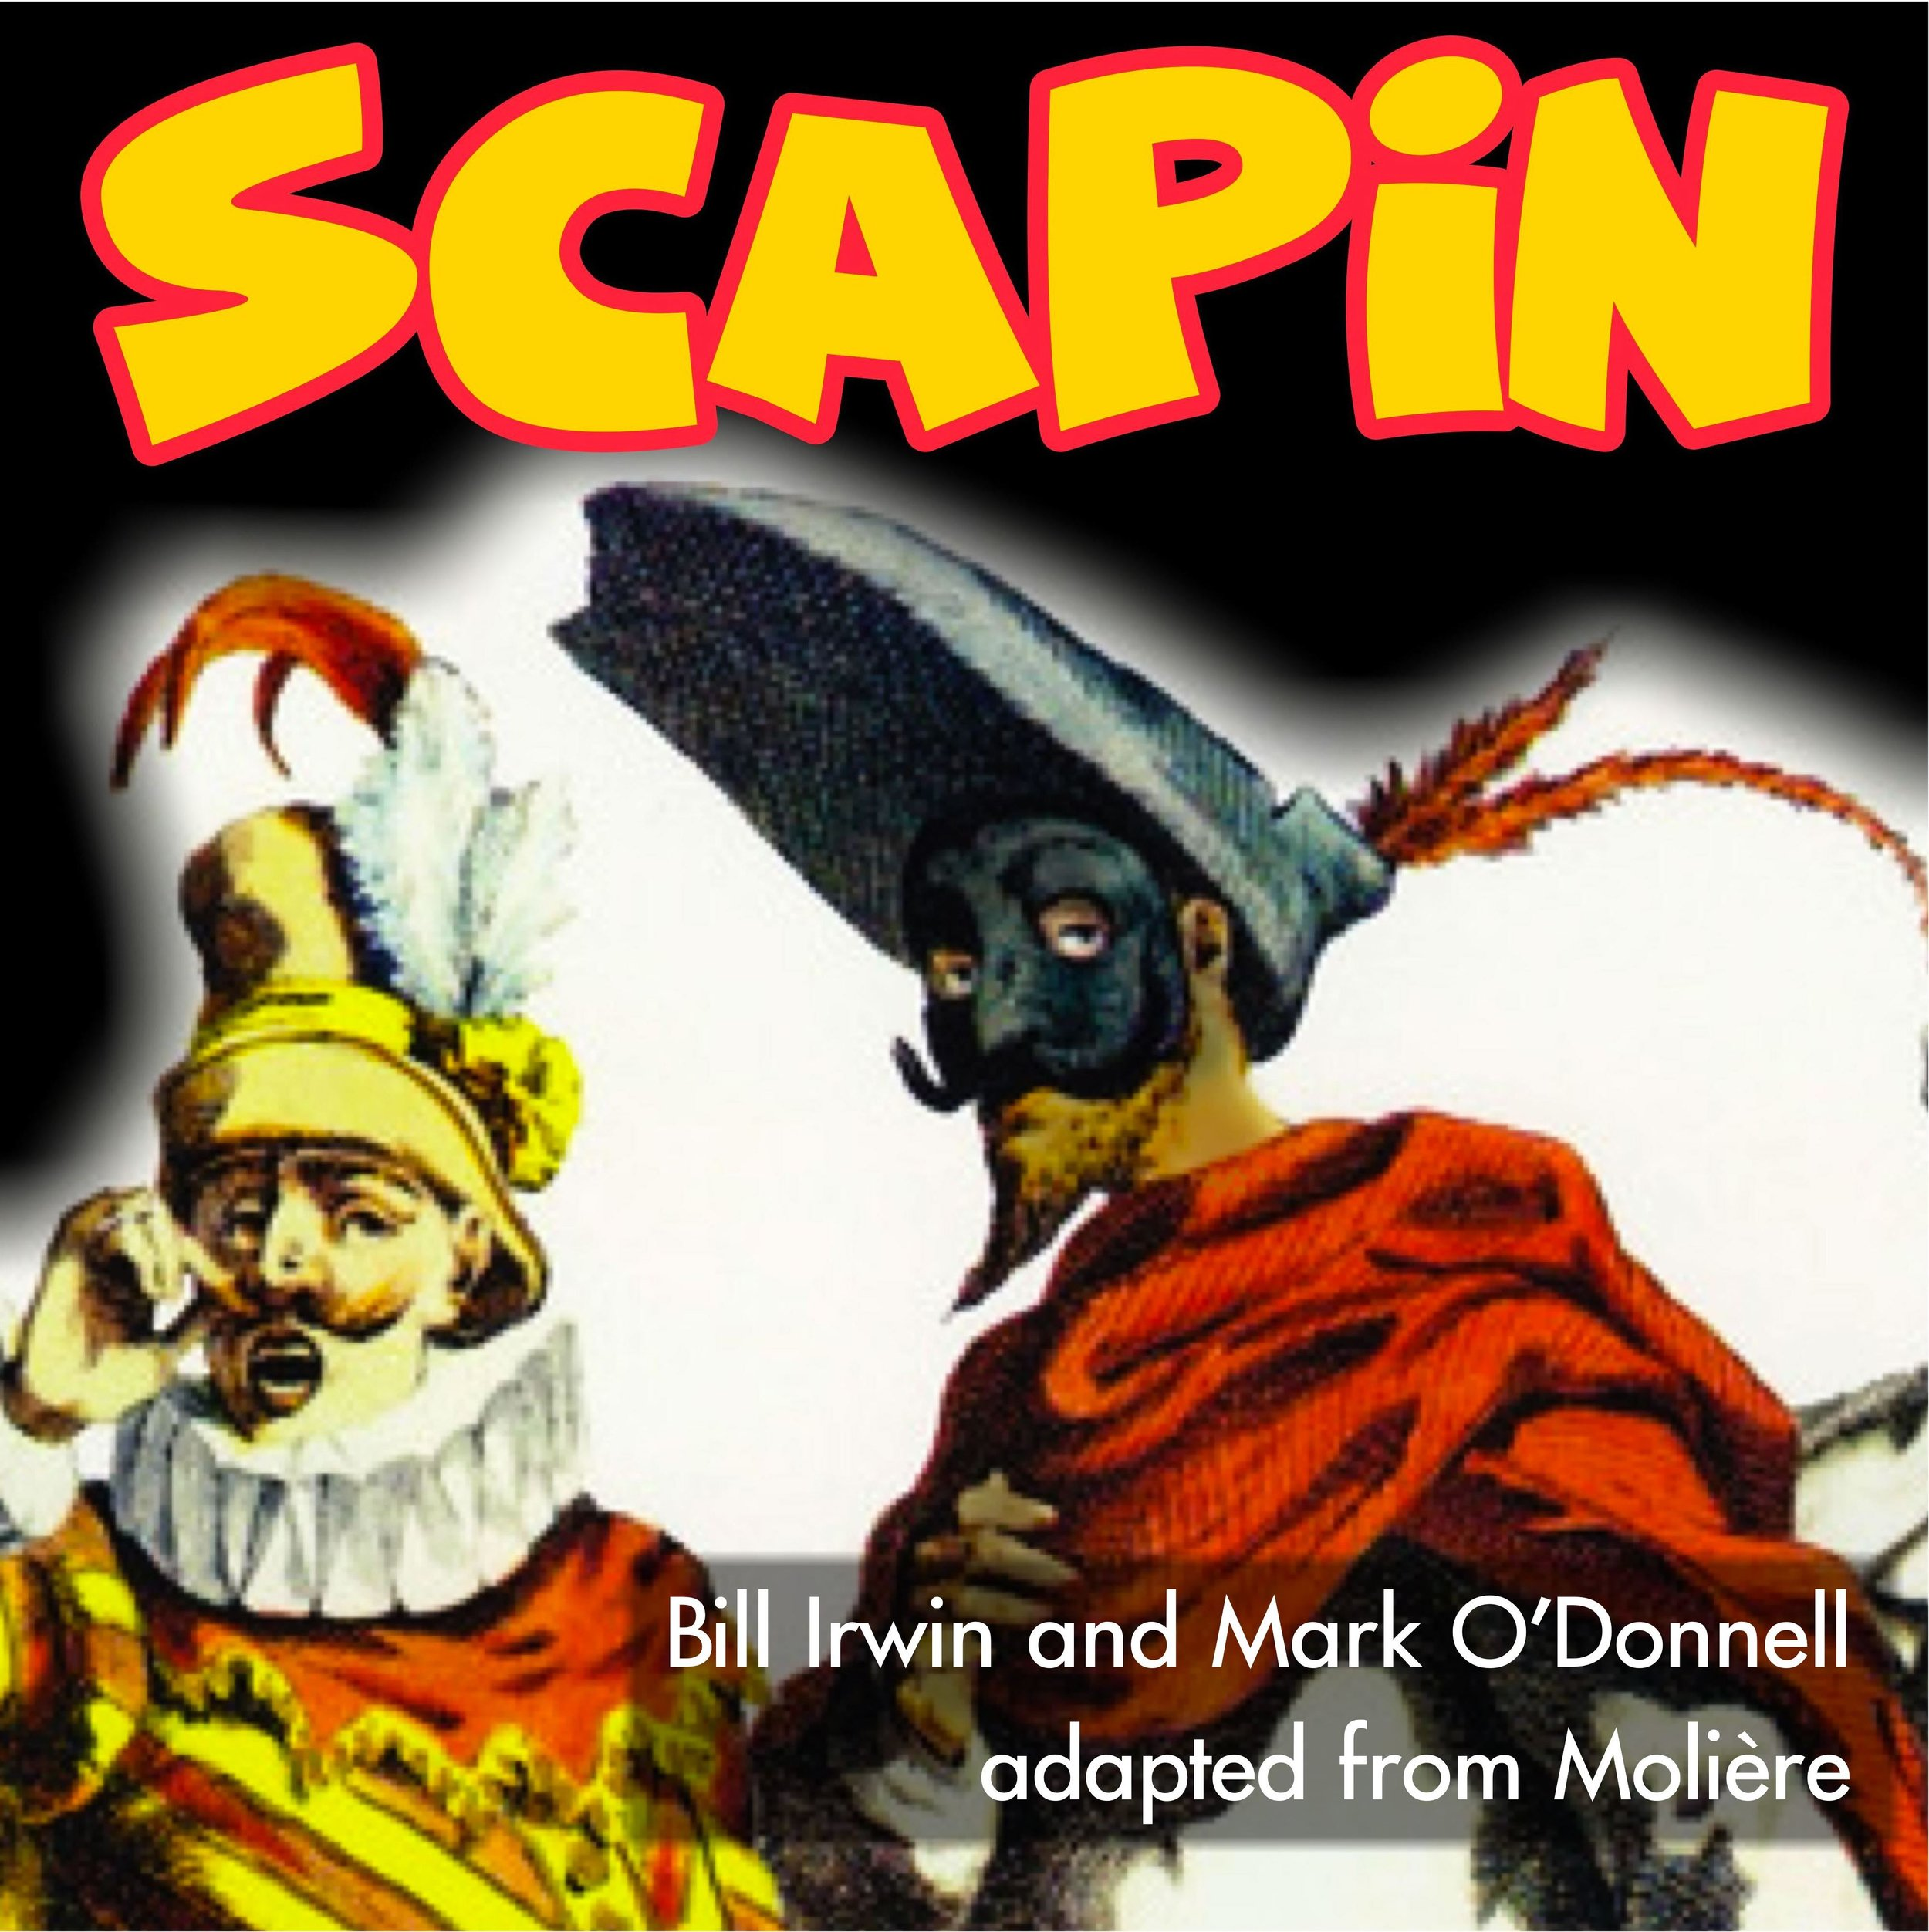 Alumni Anniversary Production - SCAPINby Bill Irwin and Mark O'Donnell, adapted from MolièreDirected by Stephen Stearns with Taylor PatnoSecret love, chaos, and gut-busting comedy ensue in this wild story for all ages!Performances: Friday, June 14the 7pm + Saturday, June 15th 1pm & 7pm + Sunday, June 16th 2pmTickets: $10Sponsored by Southern Vermont Arts & Living and The Brattleboro Reformer.